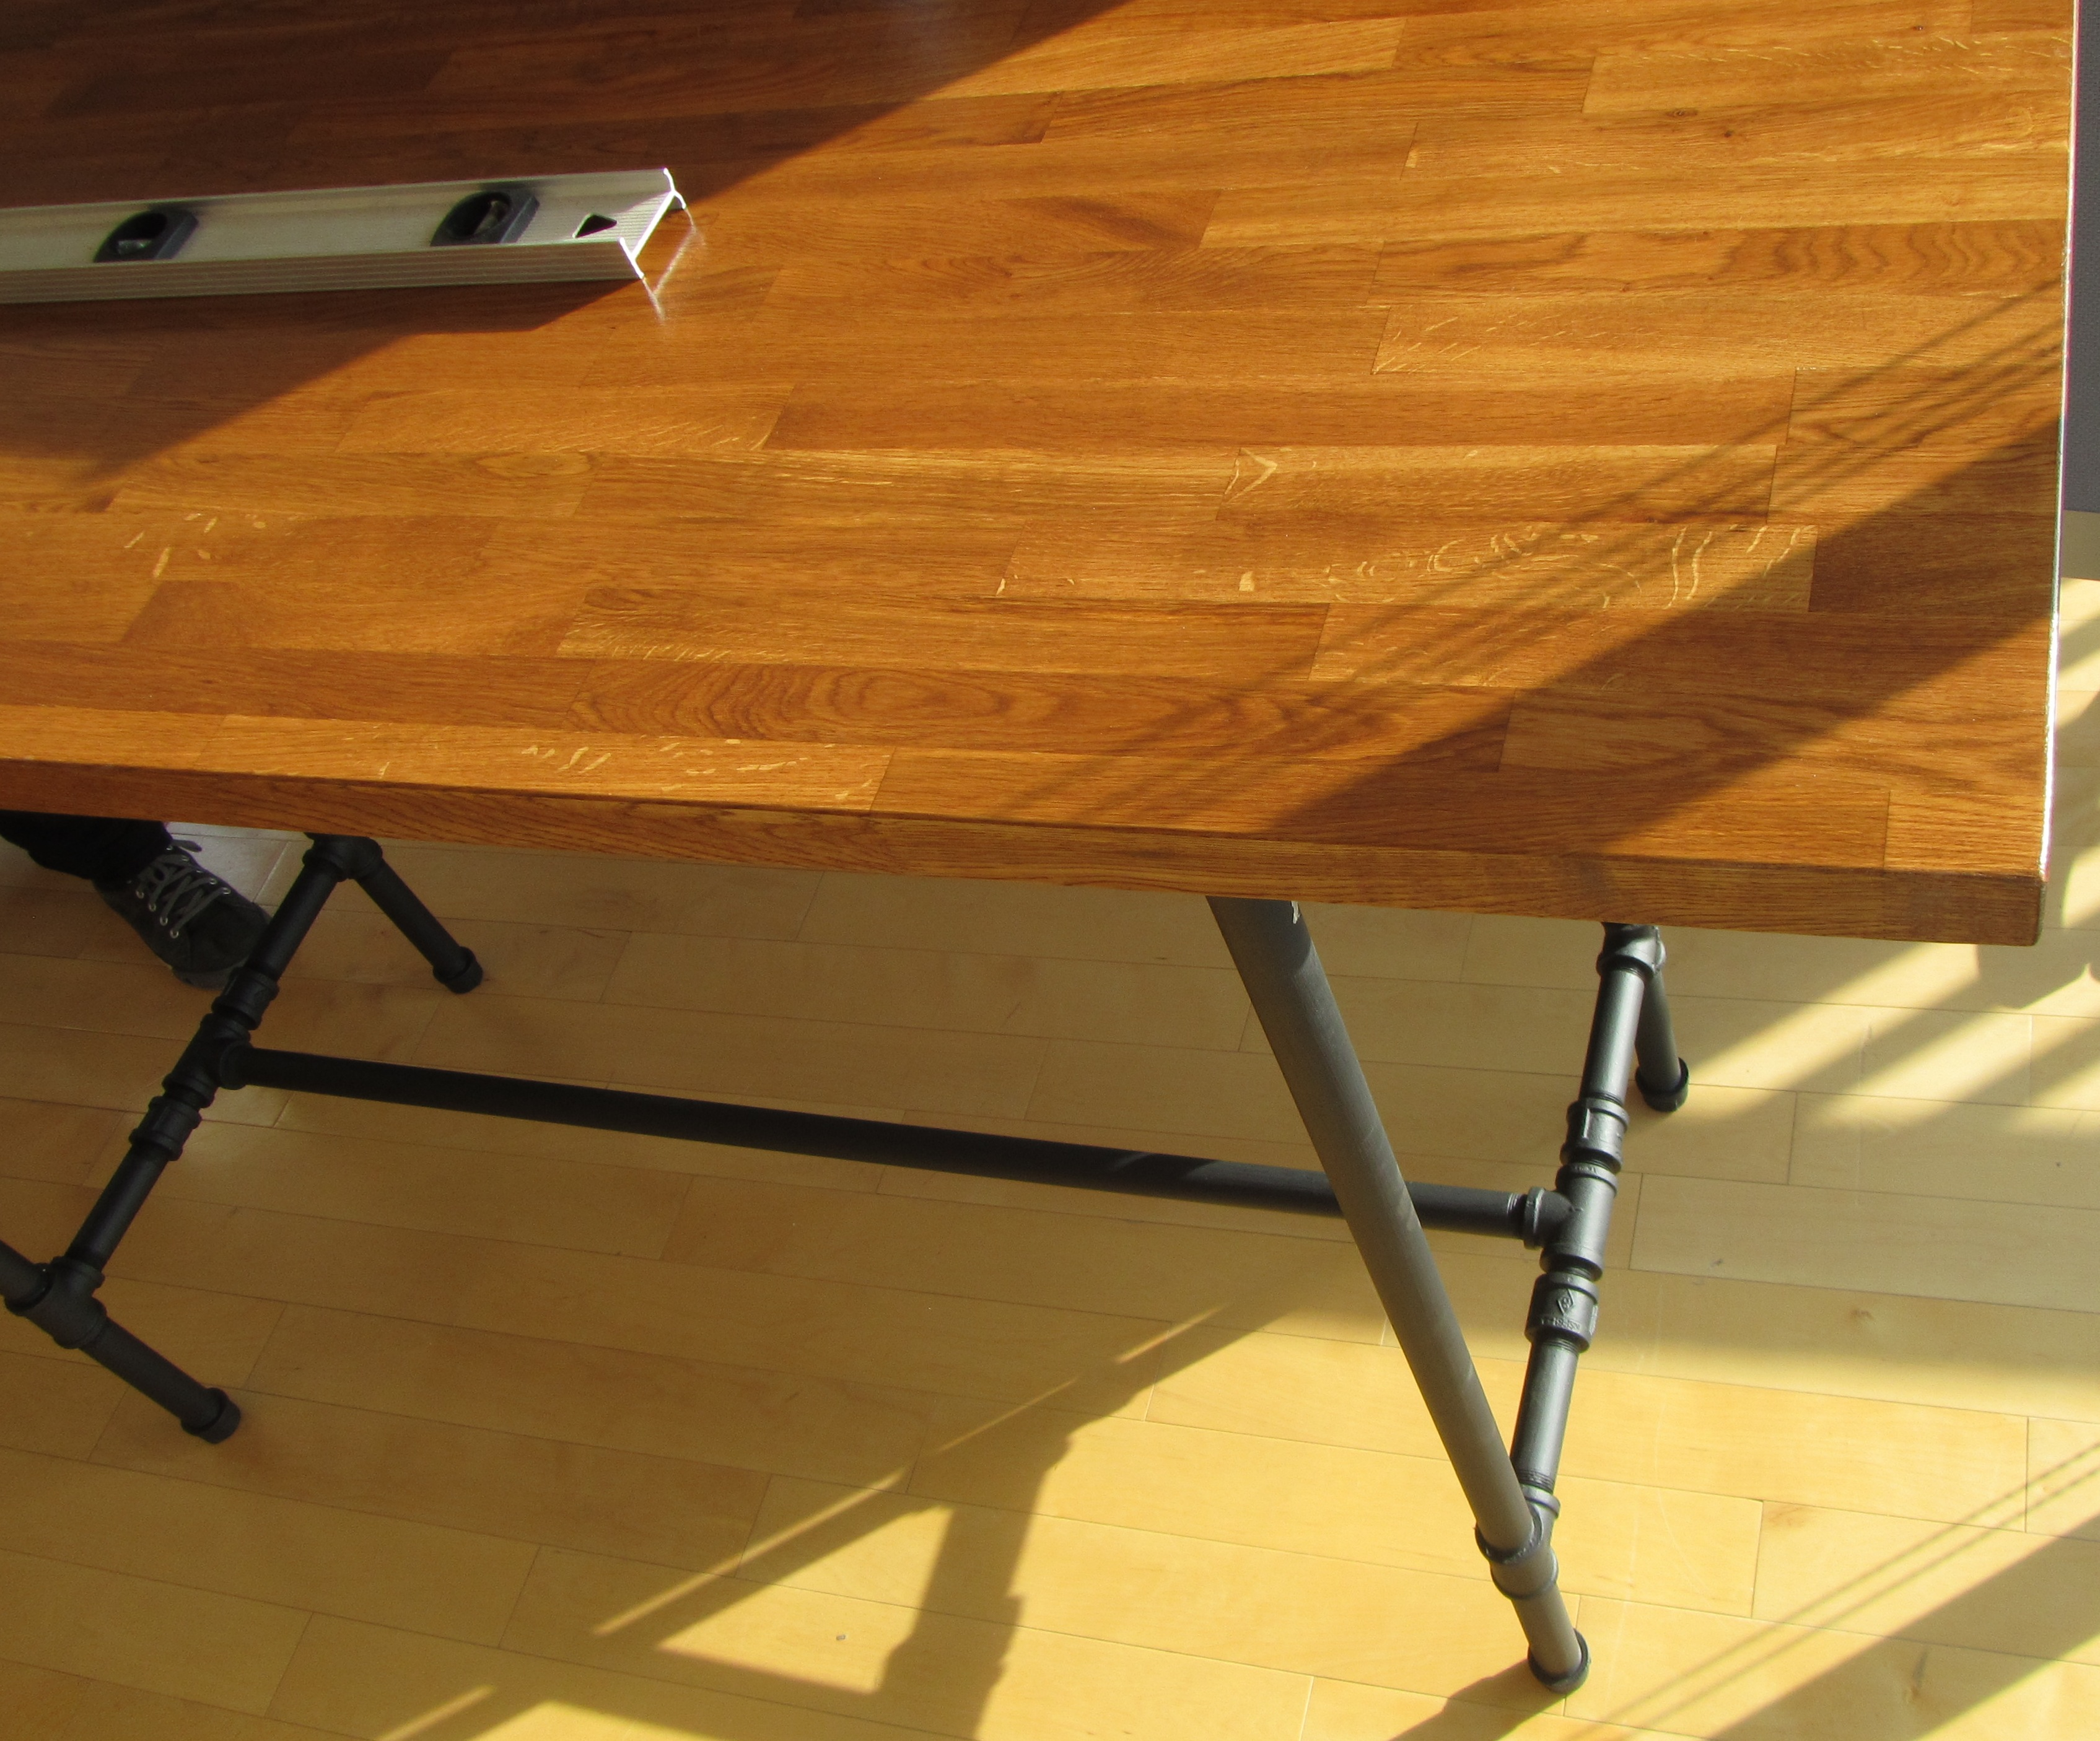 Ikea Adjustable Table Legs Steel Pipe Standing Desk - Jessica's Blog